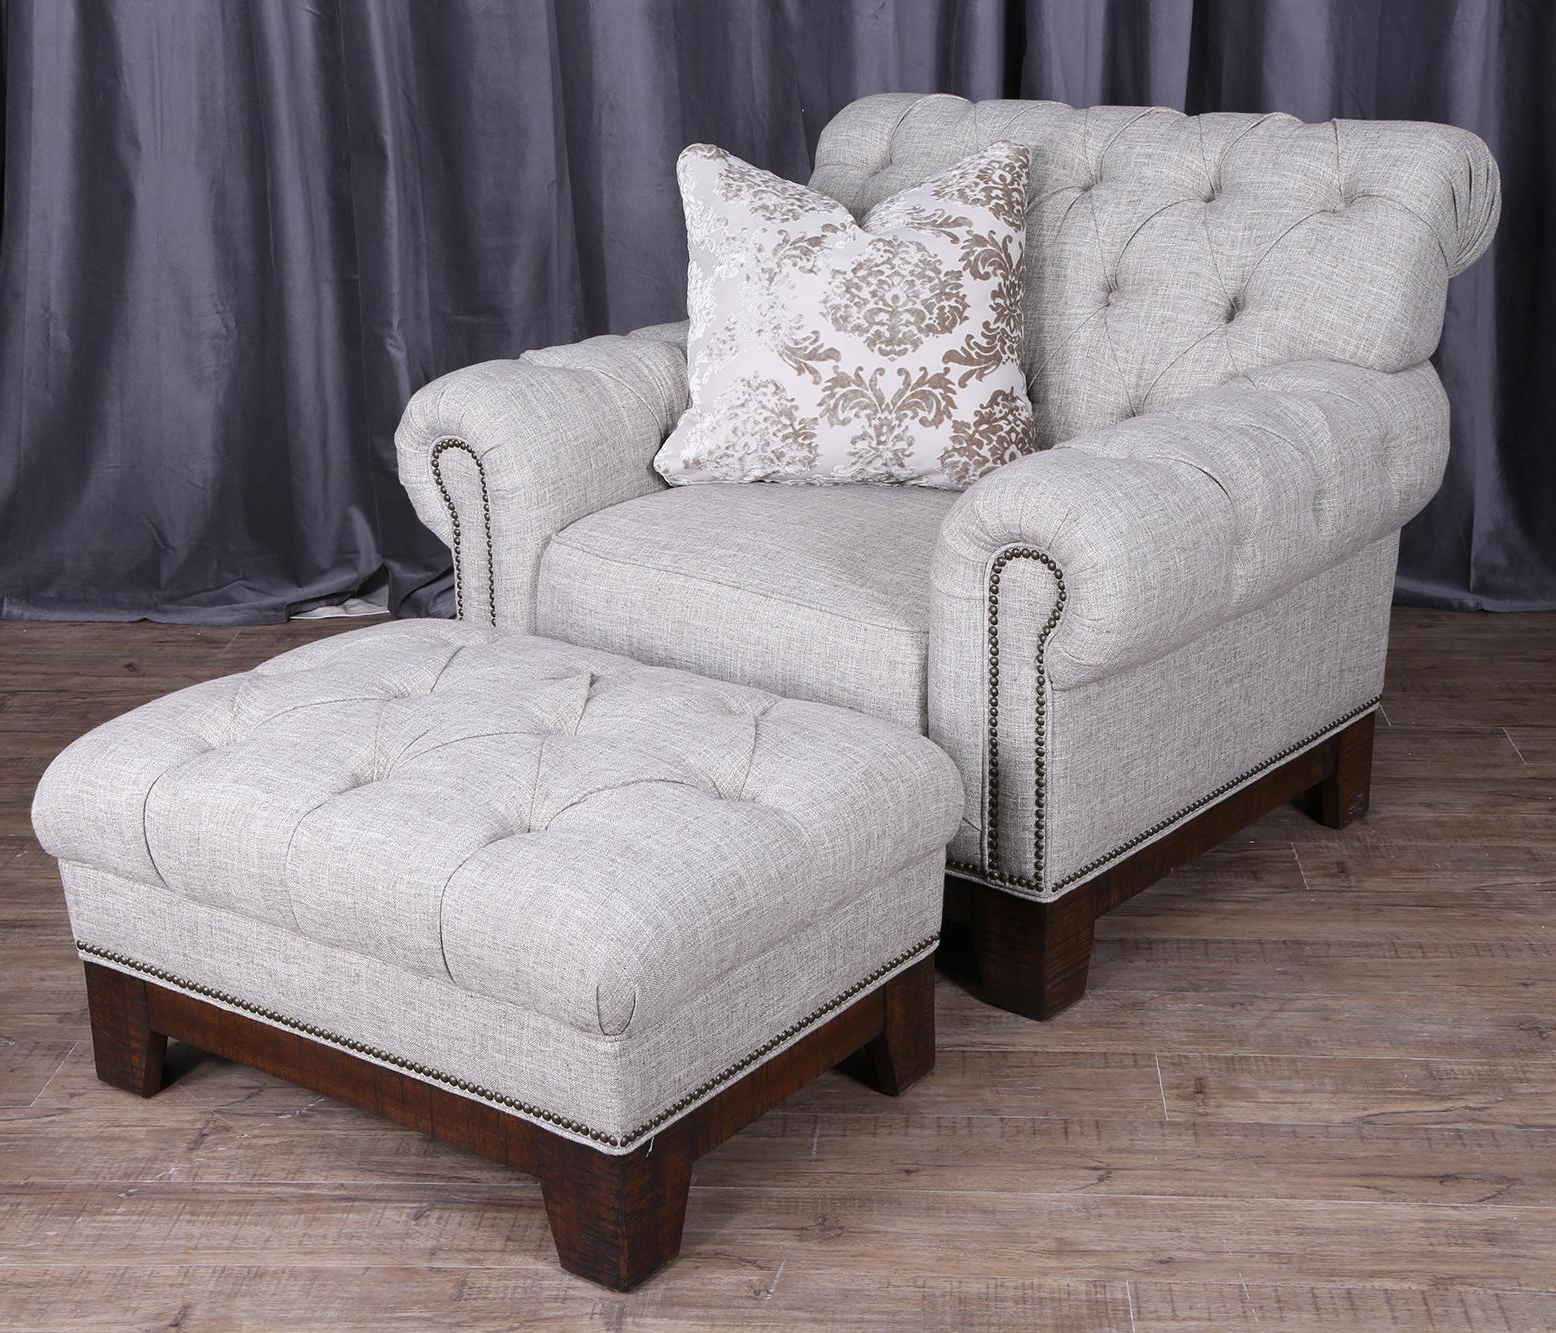 Popular Sofa Chair With Ottoman Pertaining To Magnussen Home Caitlyn Transitional Button Tufted Chair And Ottoman (View 11 of 20)